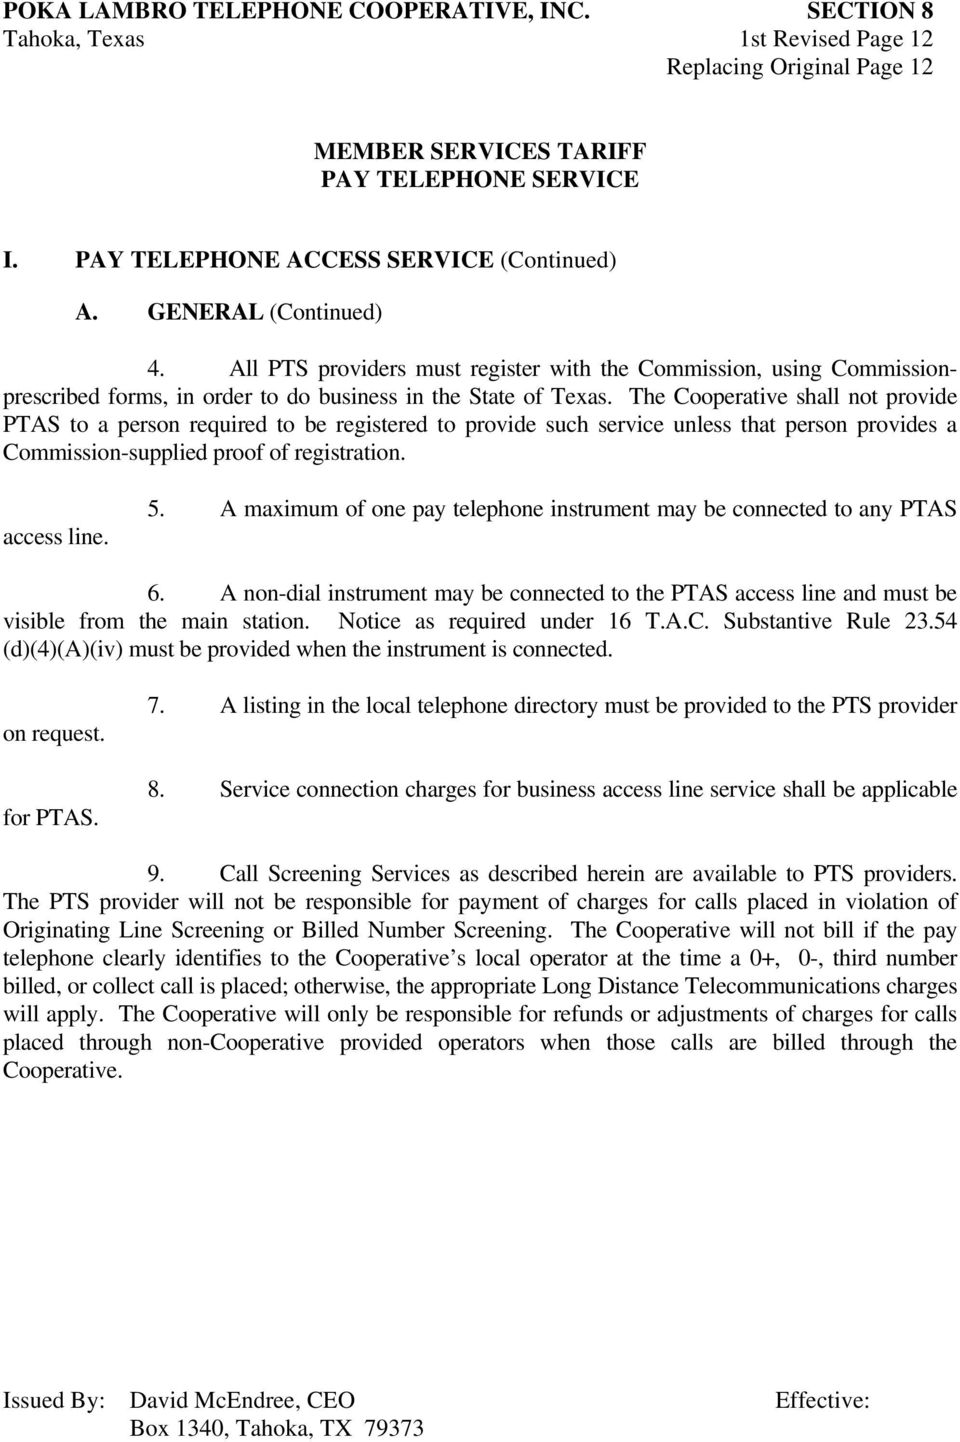 The Cooperative shall not provide PTAS to a person required to be registered to provide such service unless that person provides a Commission-supplied proof of registration. access line. 5.